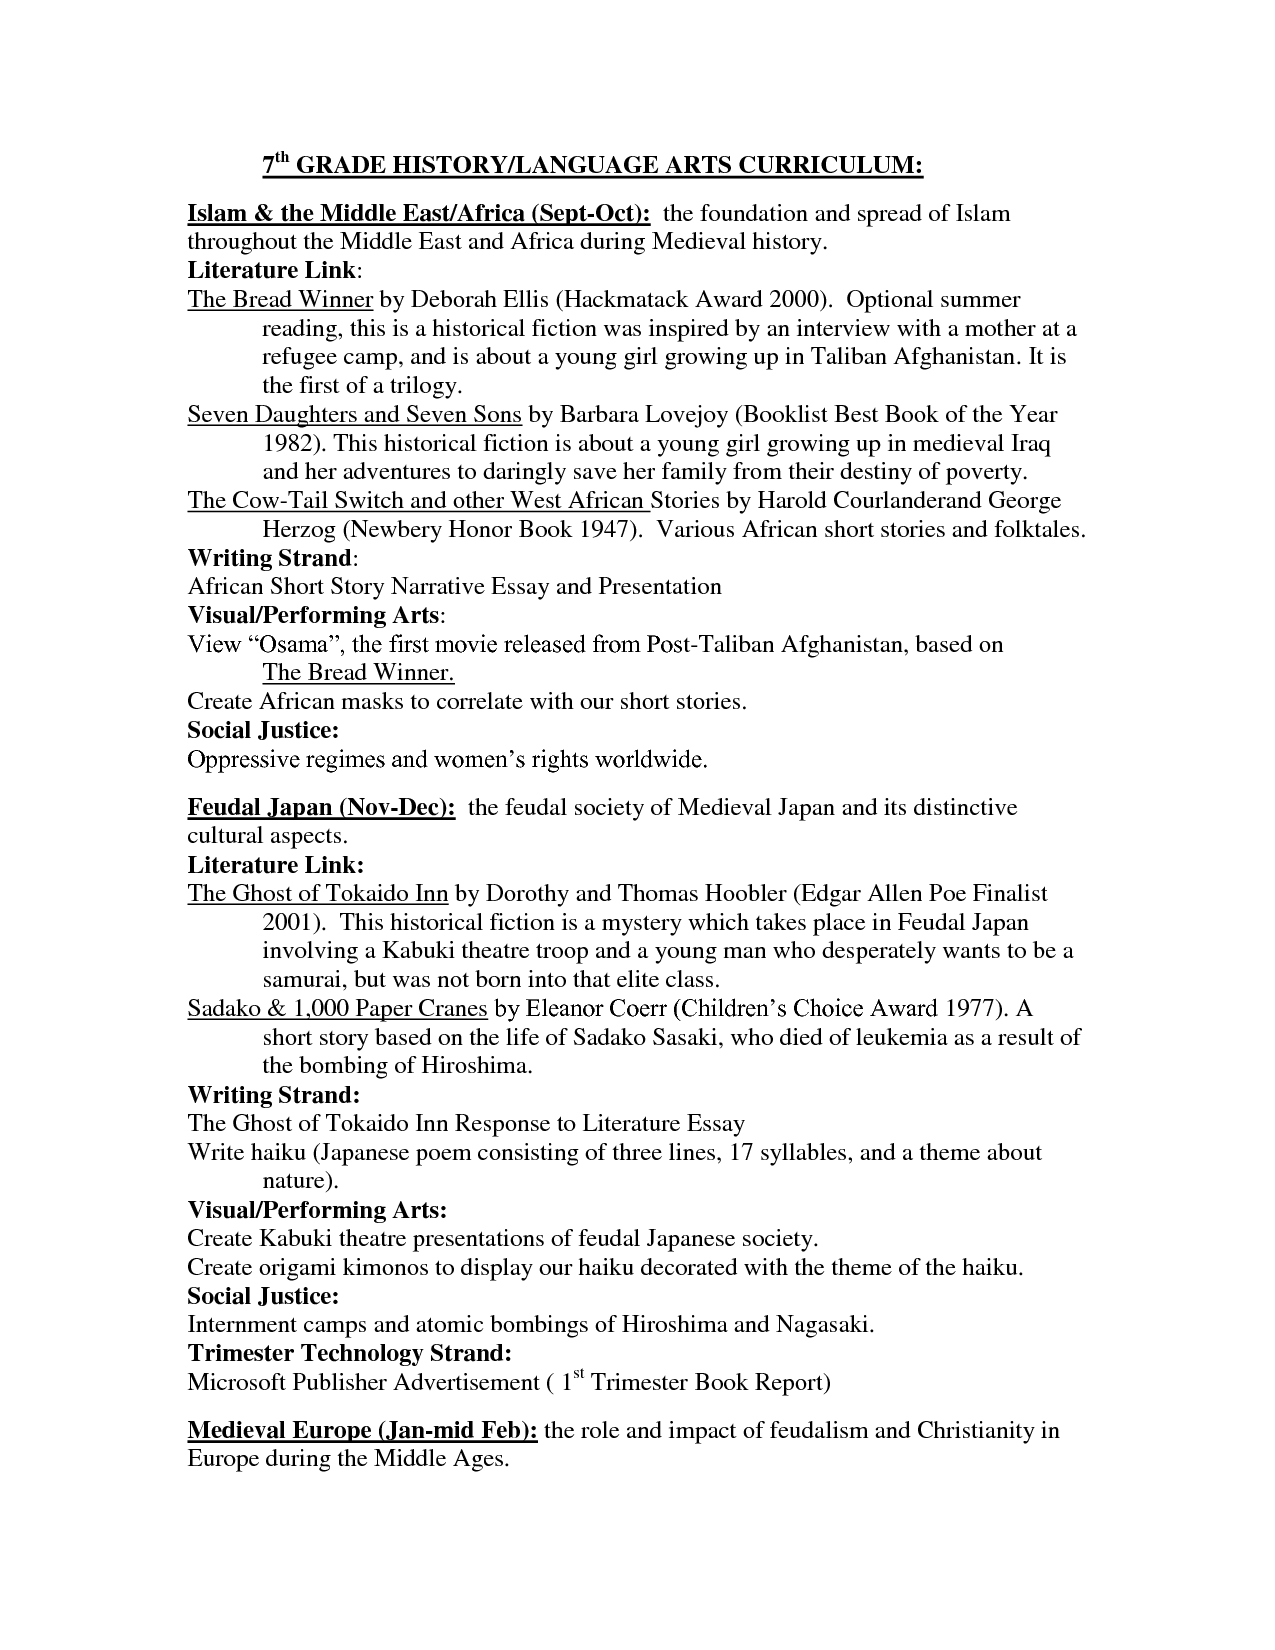 17 Best Images Of Inkheart The Book Worksheets For 7th Grade Literature